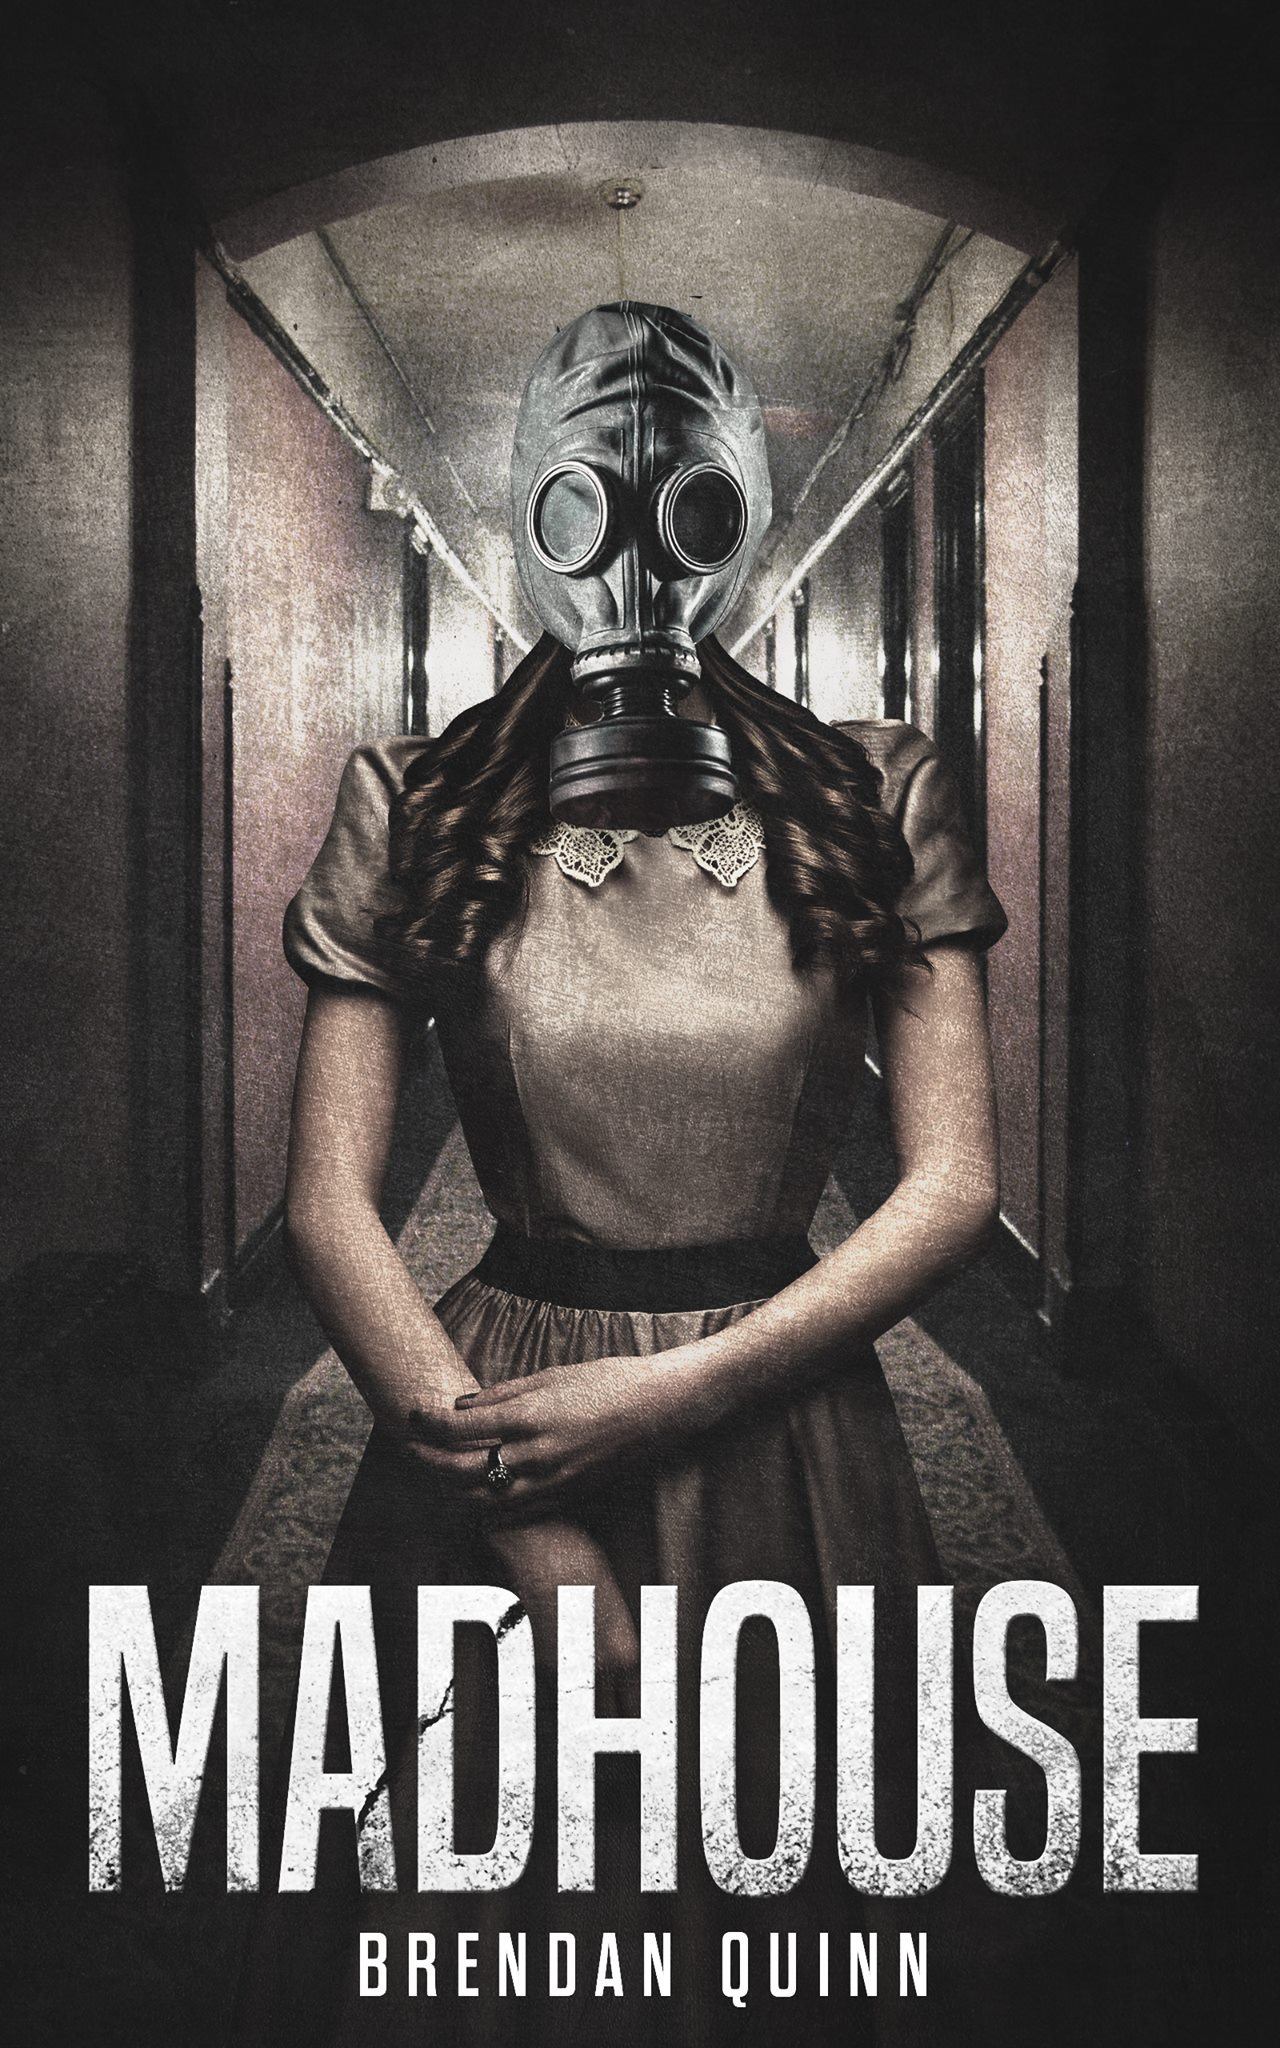 Madhouse by Brendan Quinn